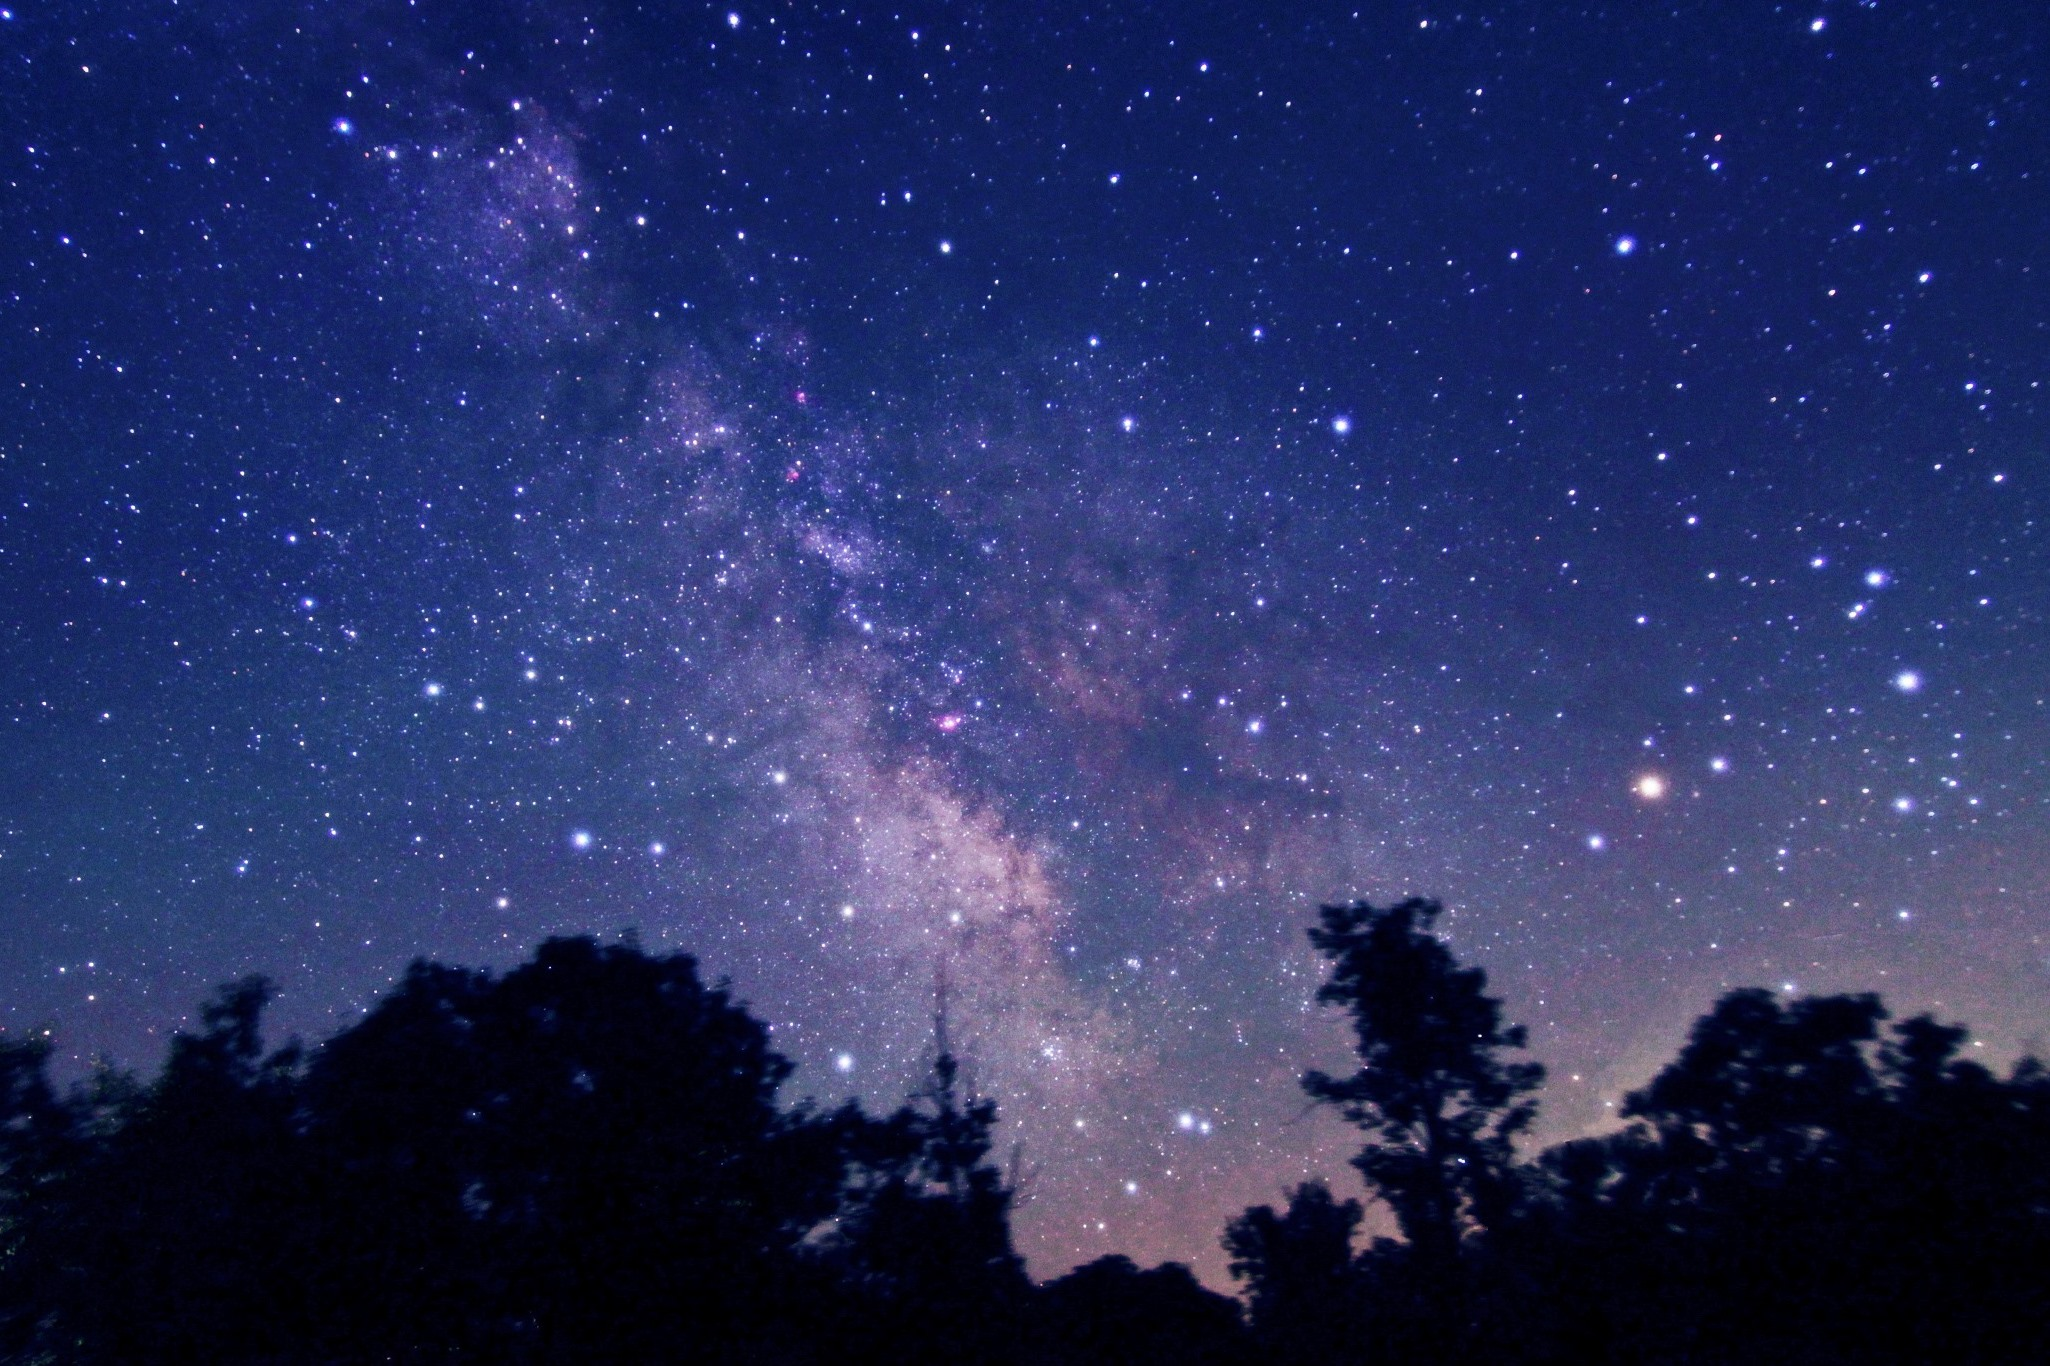 Have You Seen The Night Sky Lately